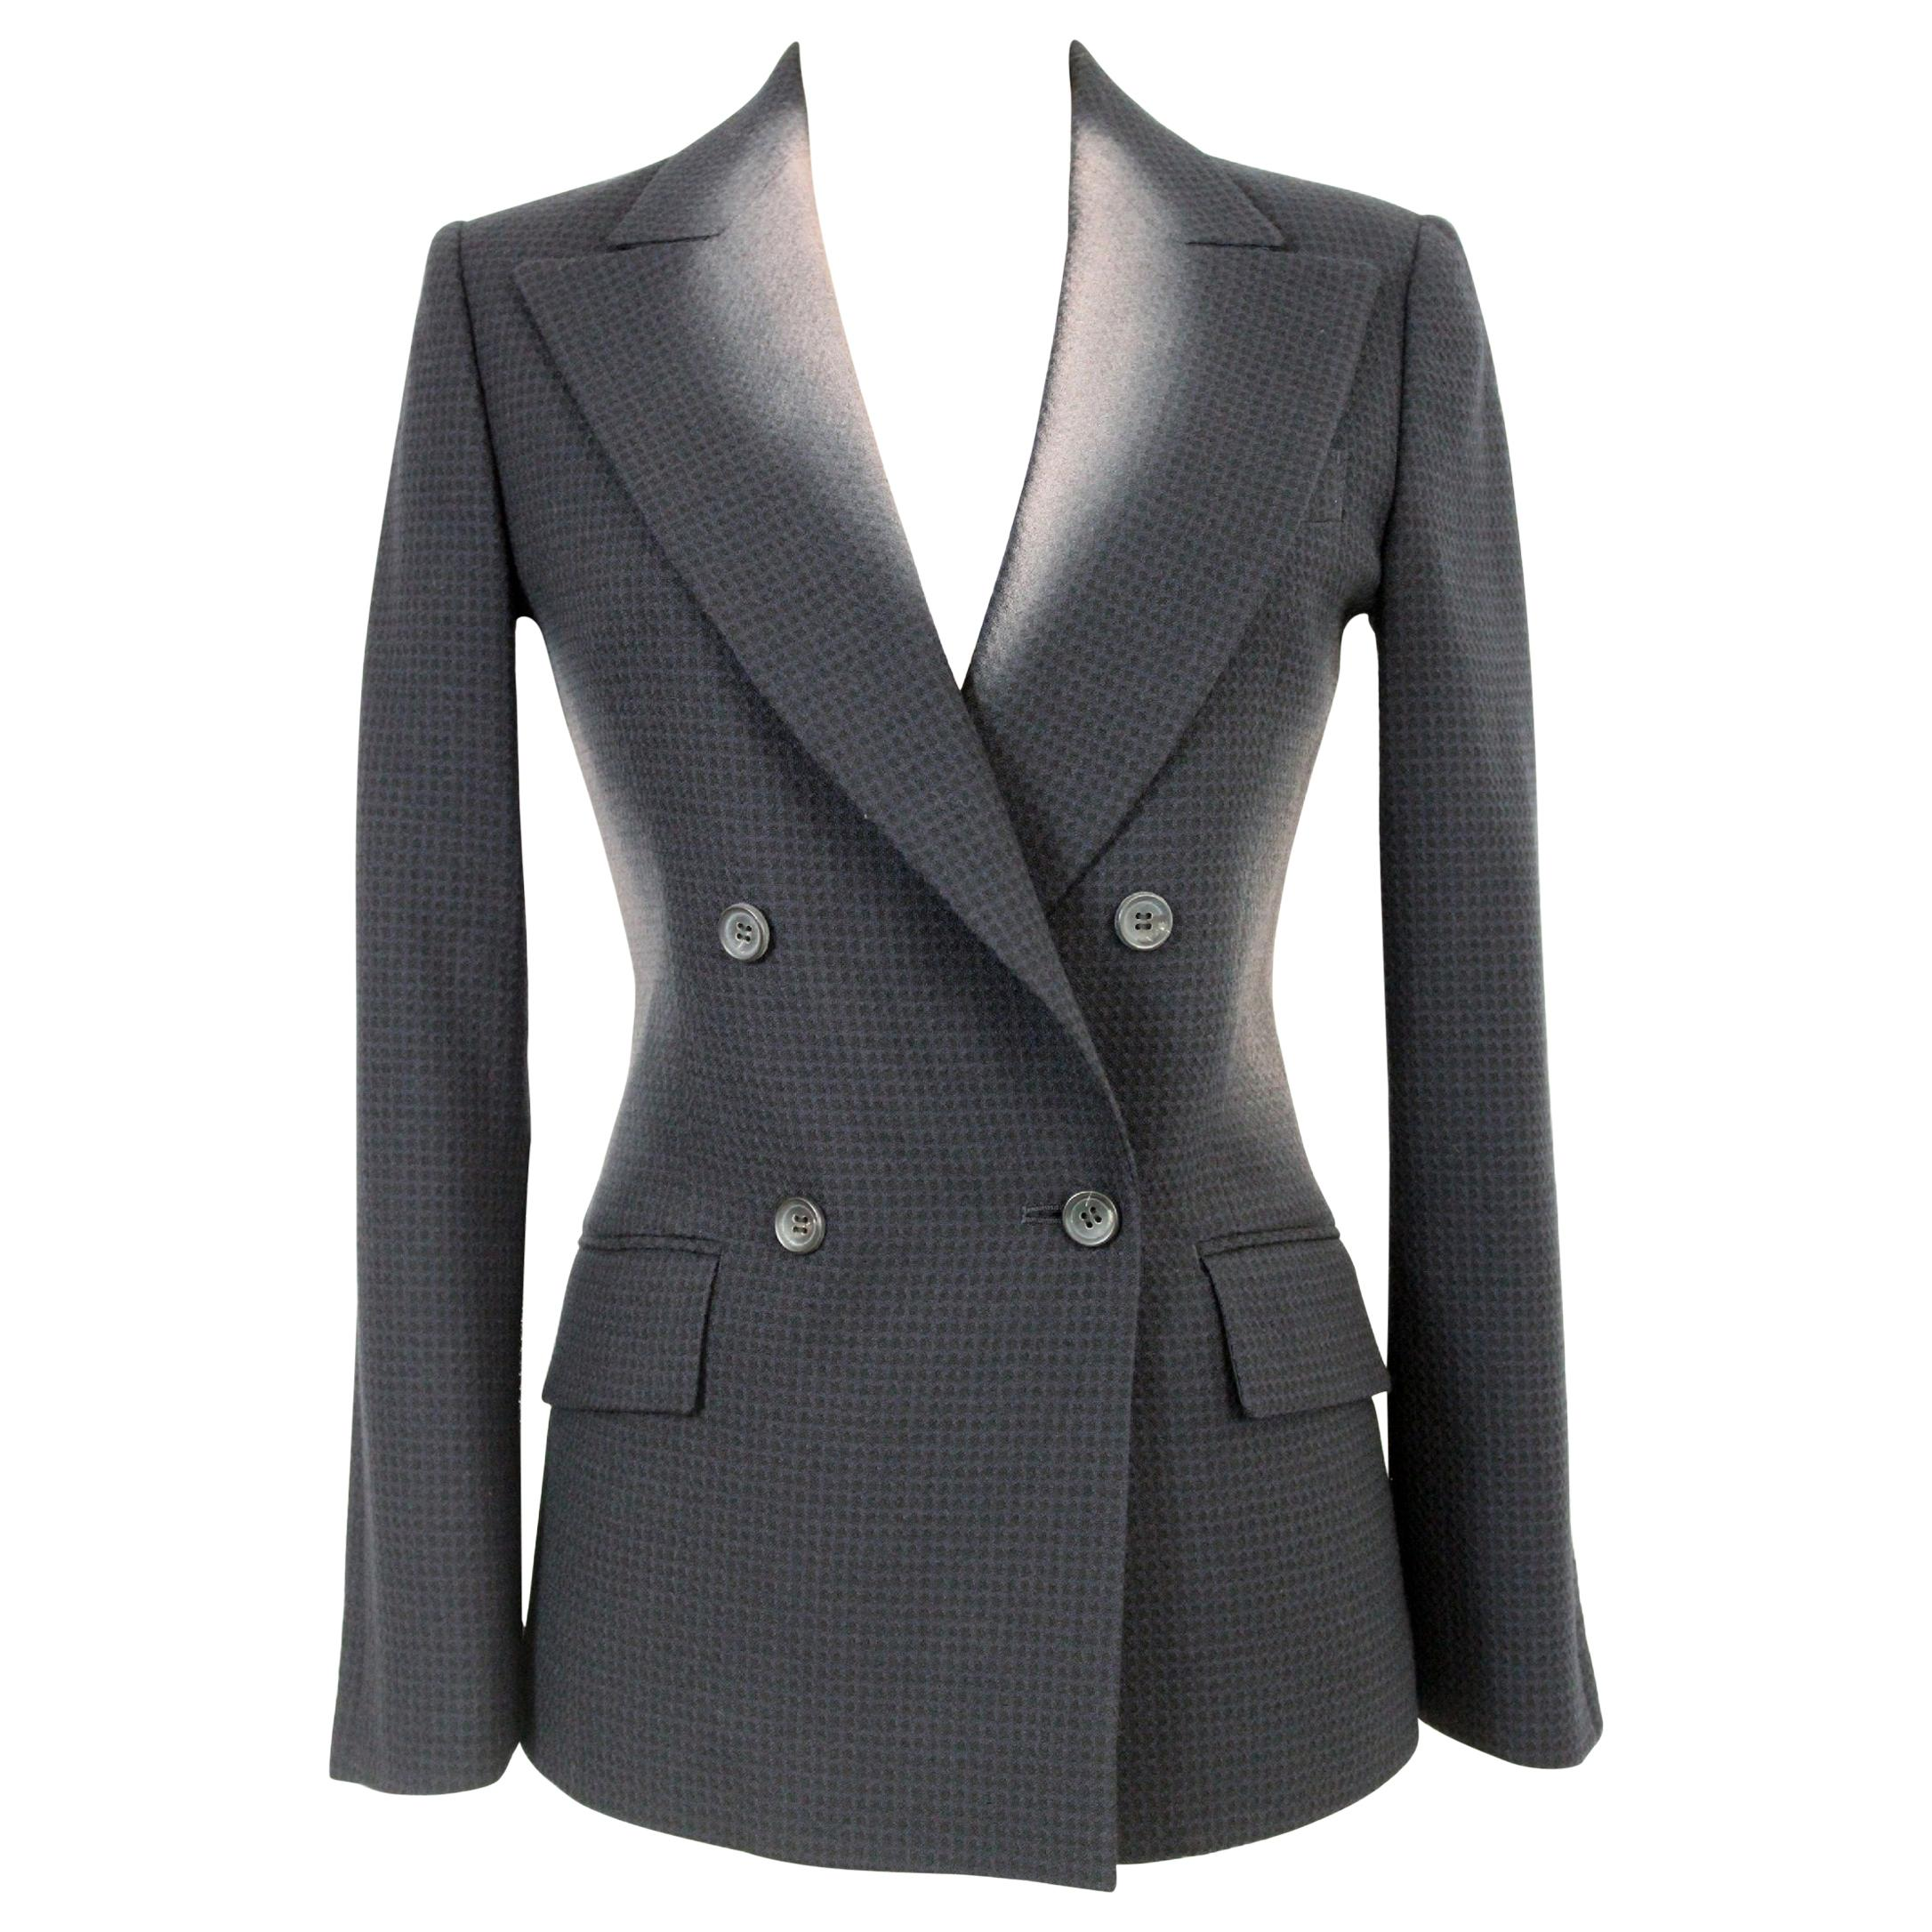 Issey Miyake Gray Wool Flared Double Breasted Transparent Jacket 2000s